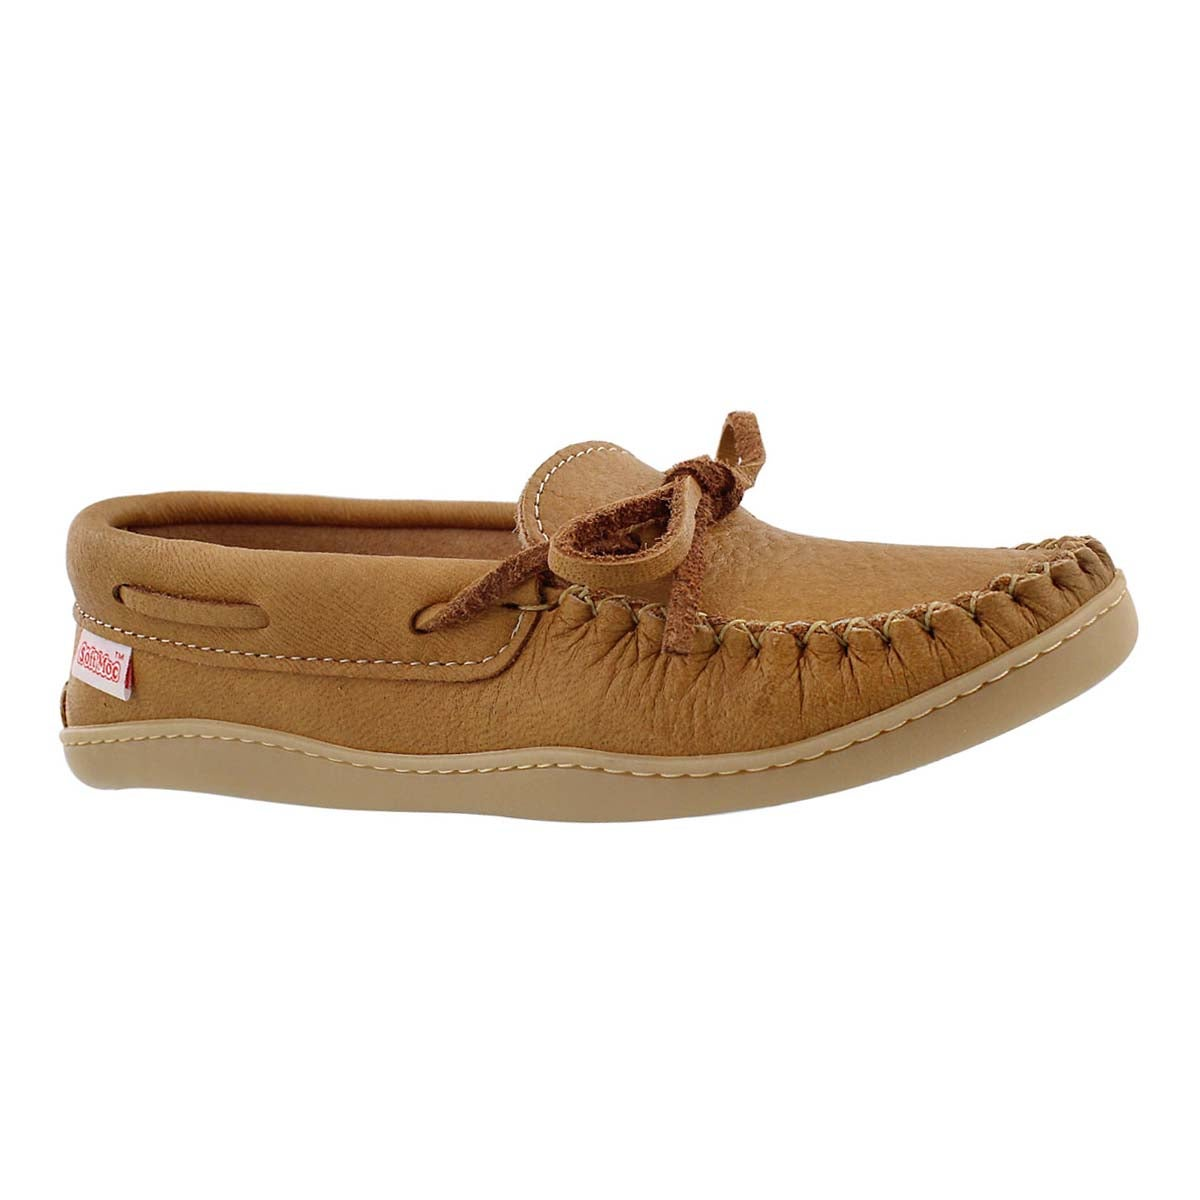 Women's natural moose TPR sole moccasin